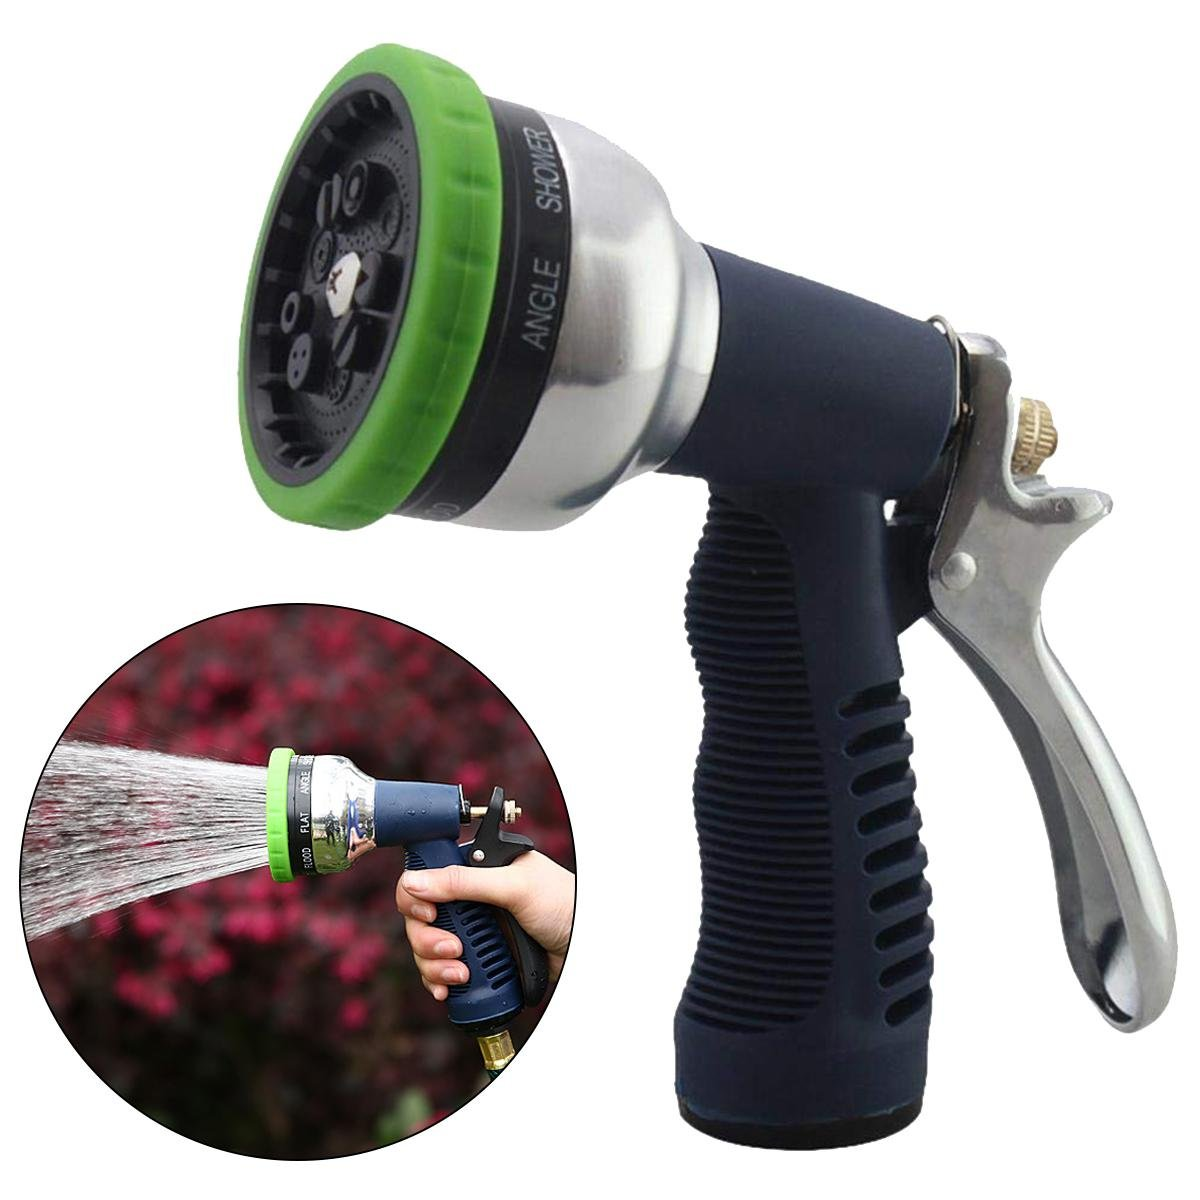 AOLVO Garden Hose Nozzle, Water Hose Spray Nozzle Heavy Duty,High Pressure 9 Patterns Hand Sprayer with Metal Grip for Watering Lawn and Yard Plants, Car Washing and Showering Dog & Pets.